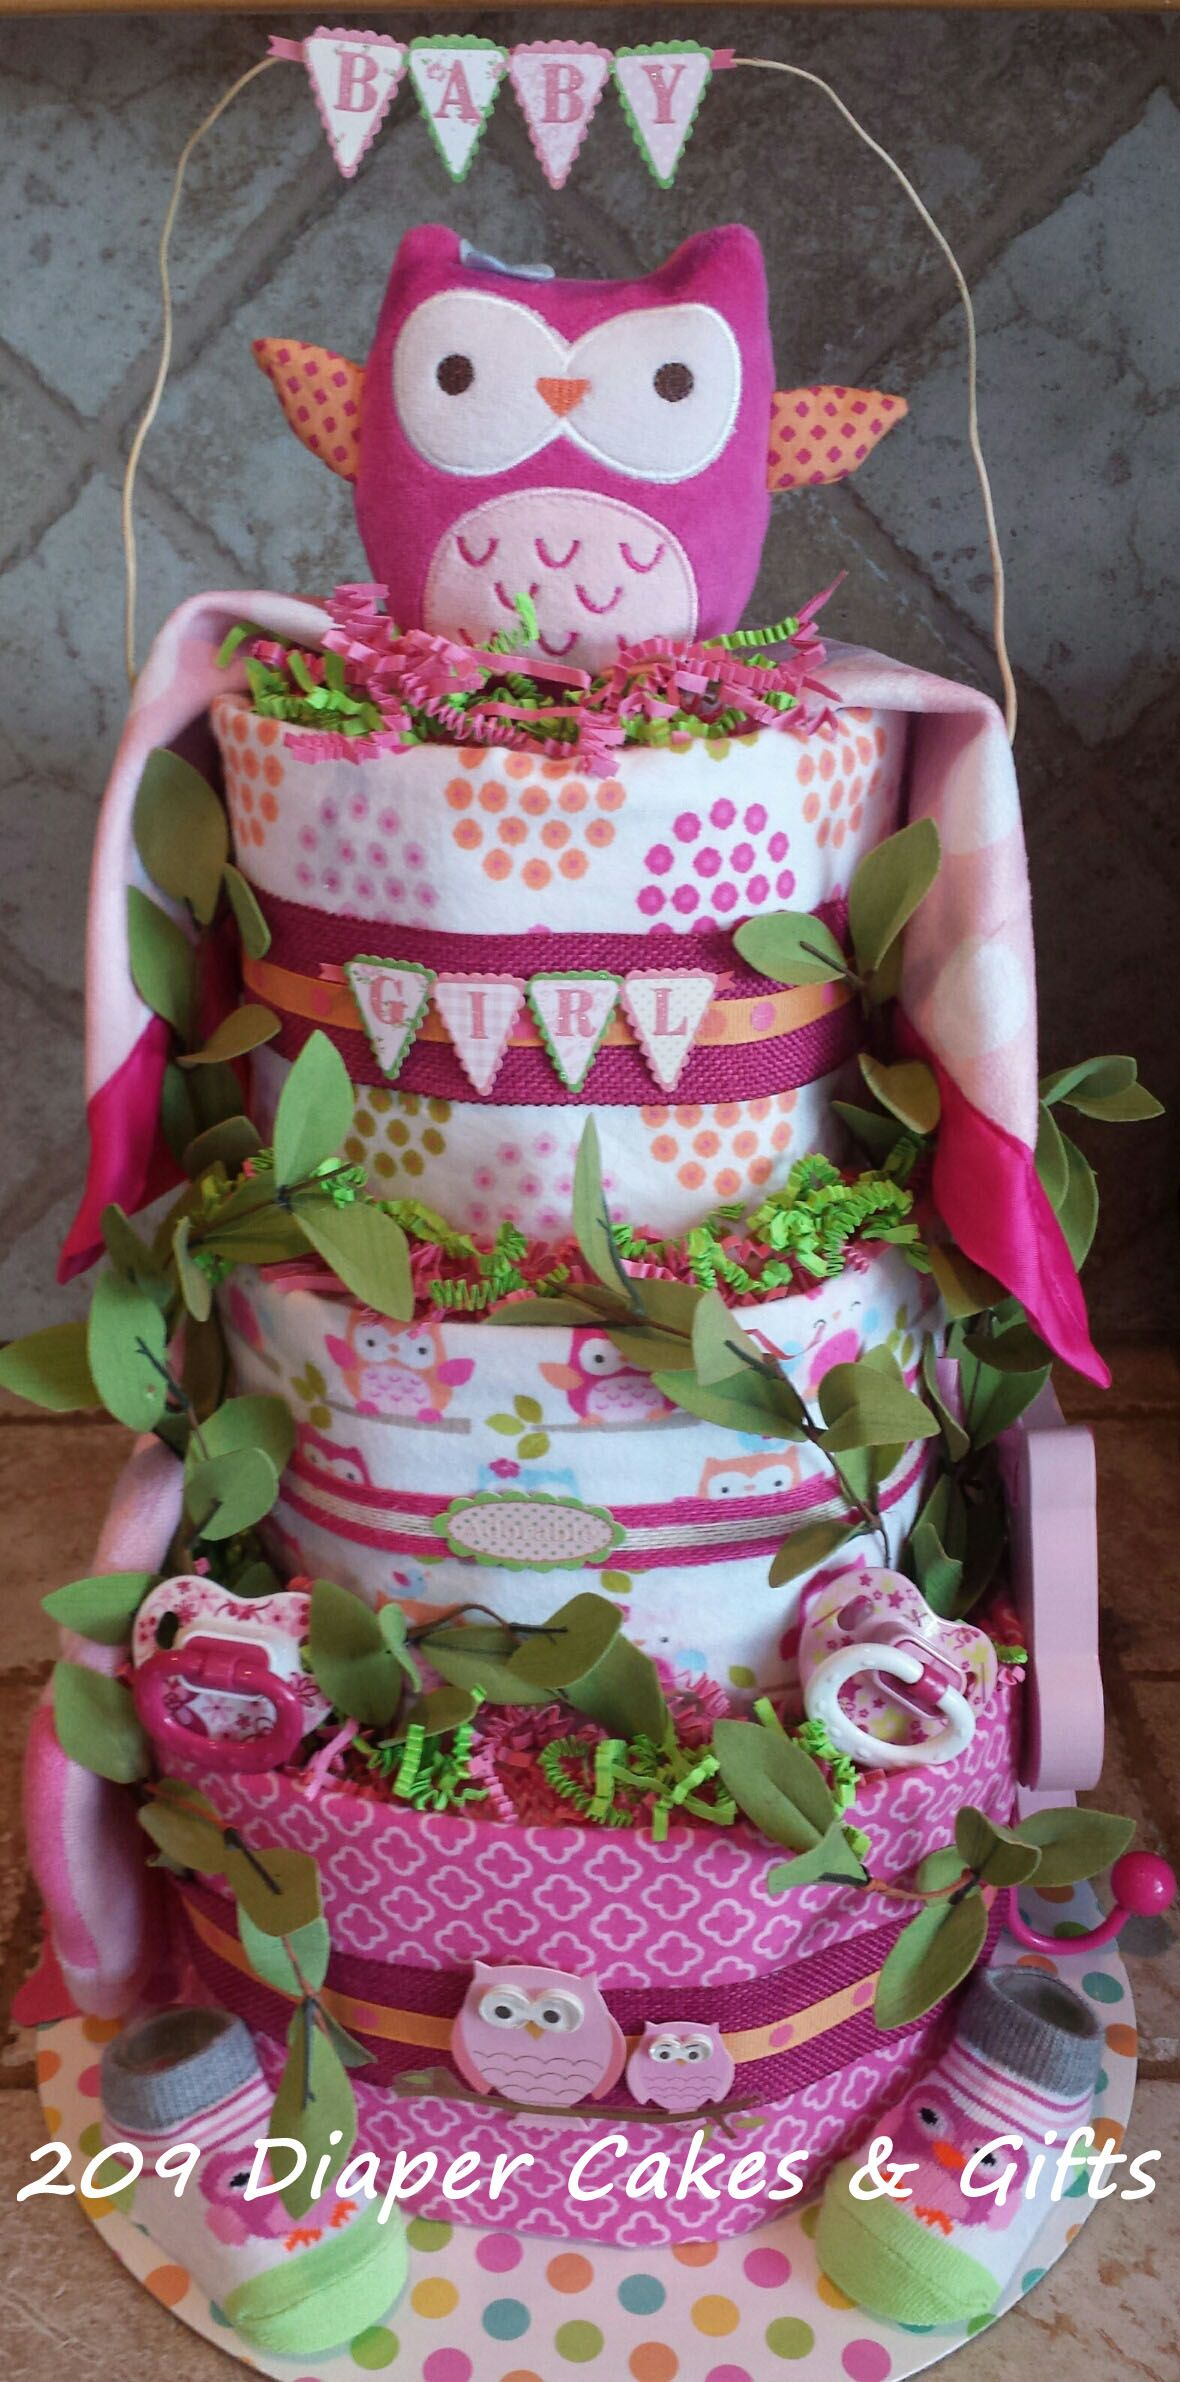 Pink Owl Diaper Cake by 209 Diaper Cakes & Gifts